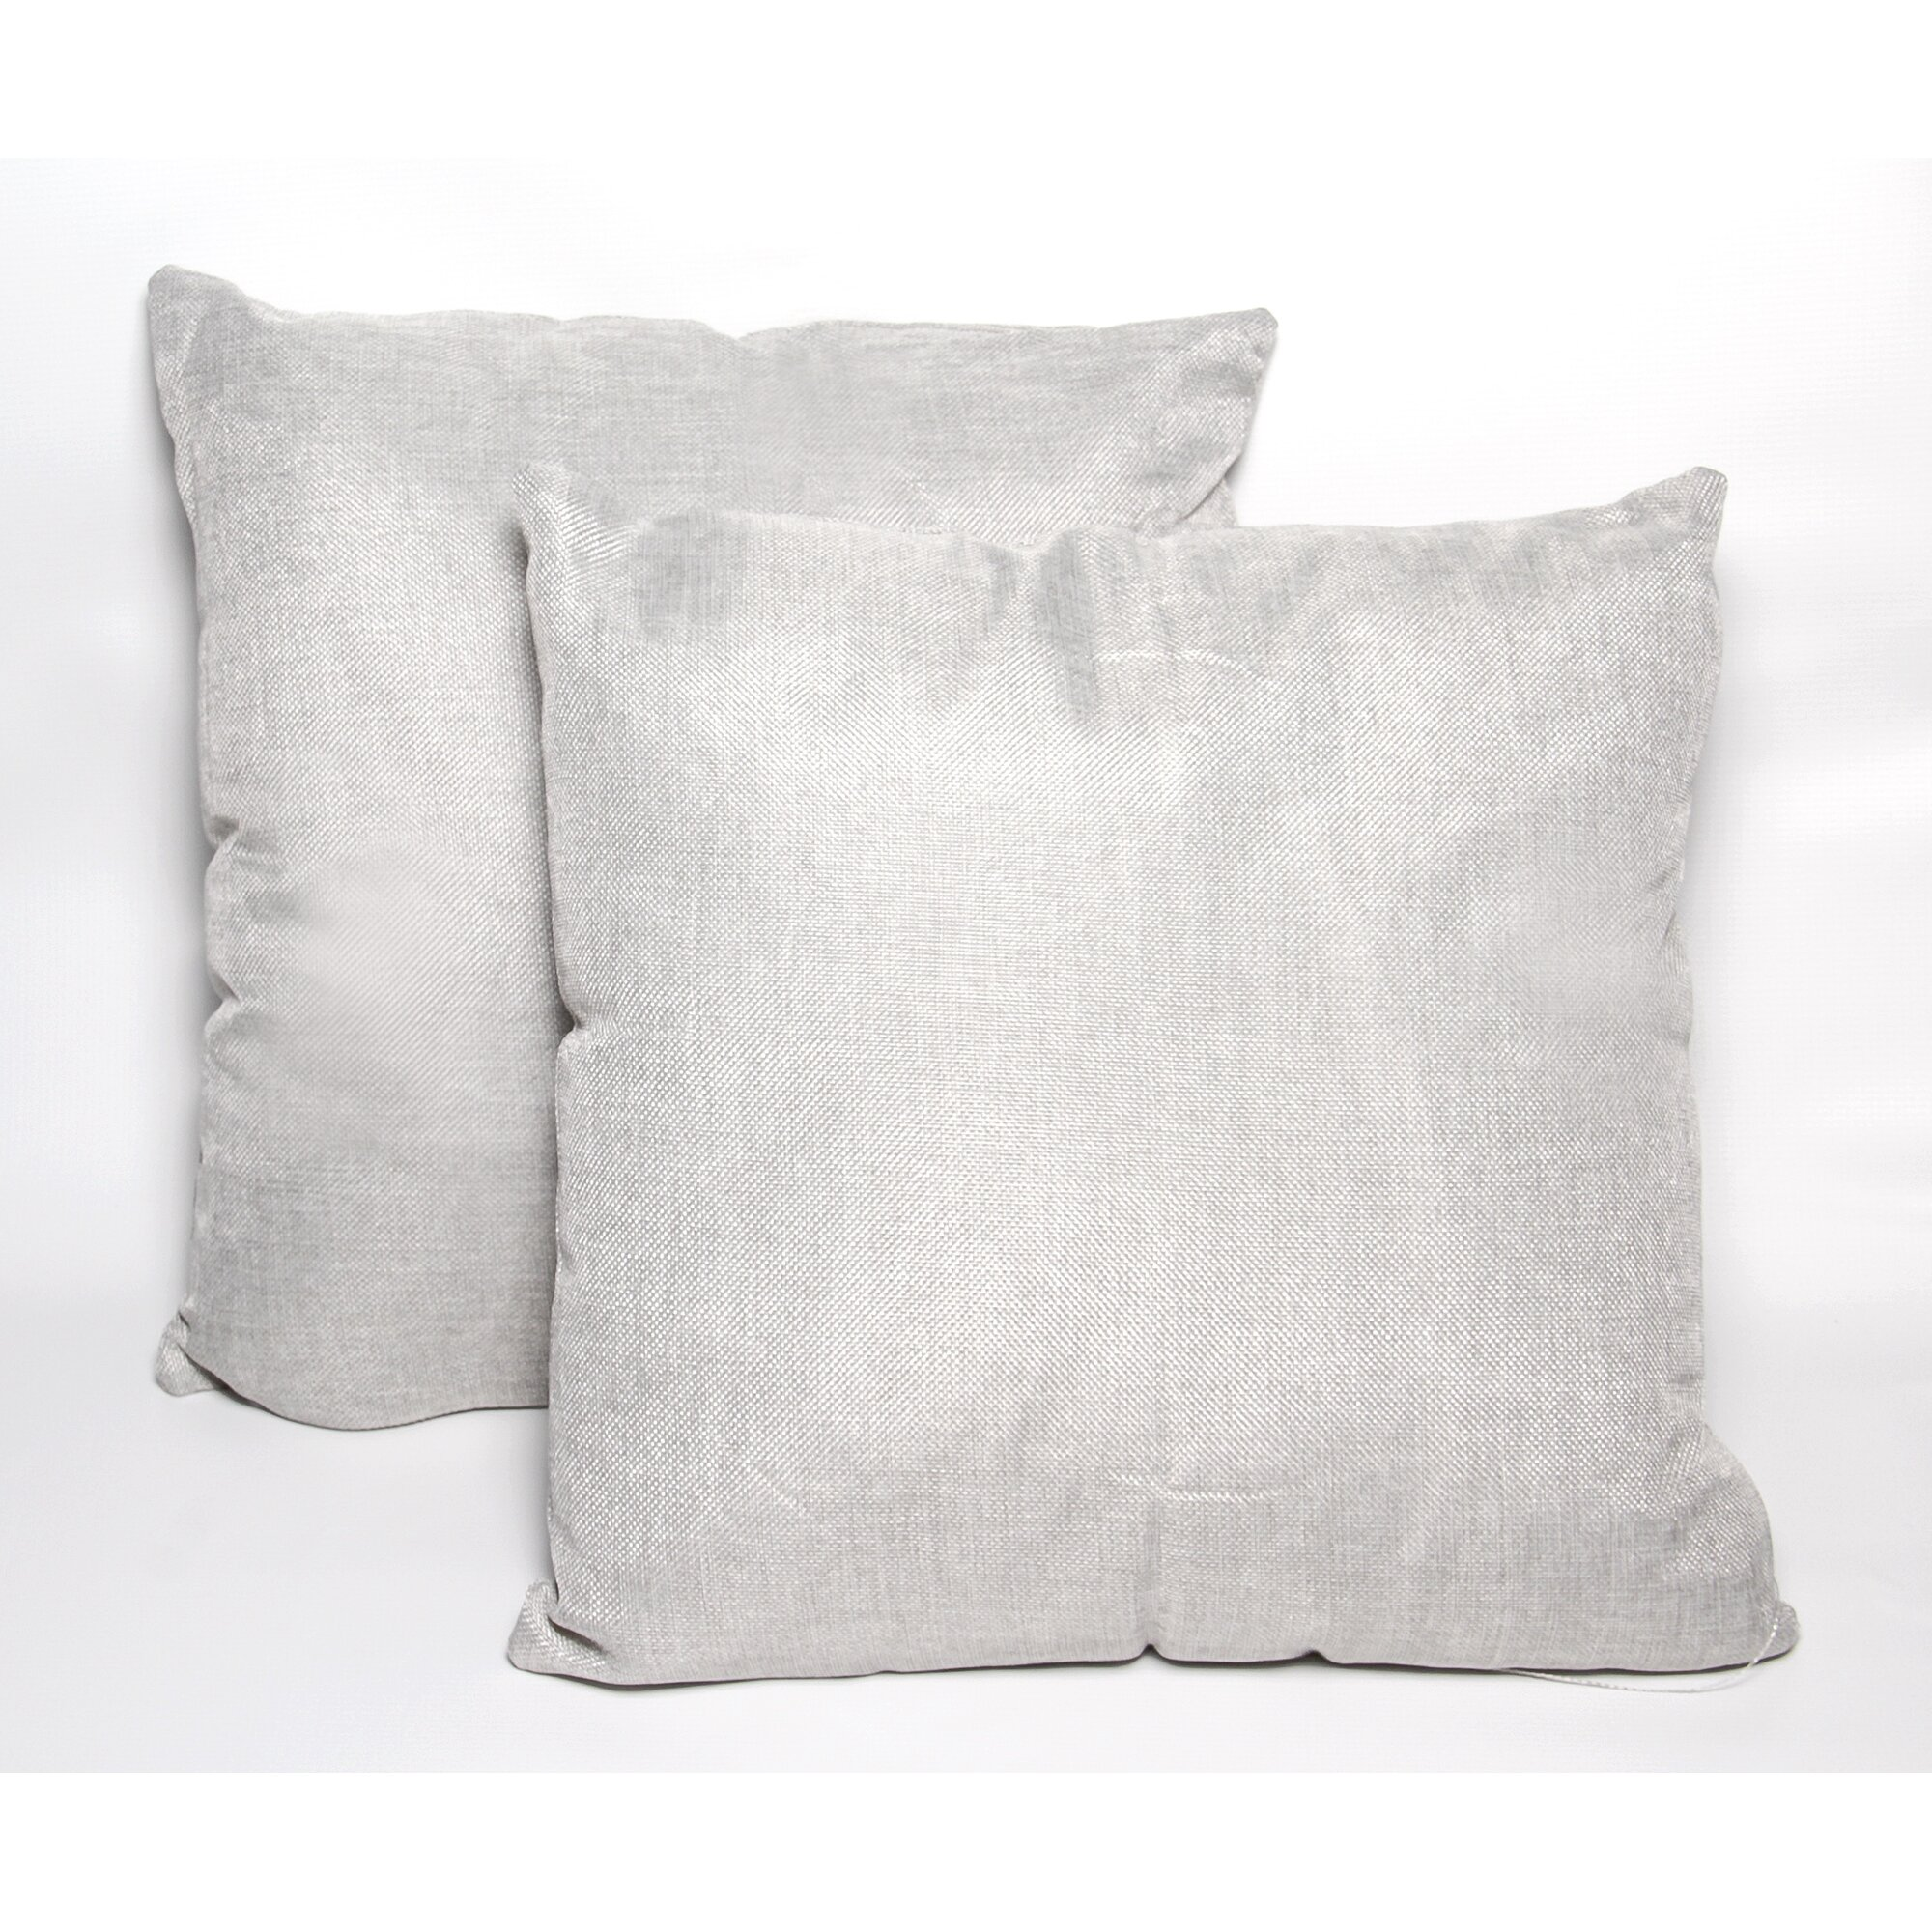 Wayfair Blue Decorative Pillows : Wayfair Basics Wayfair Basics 18